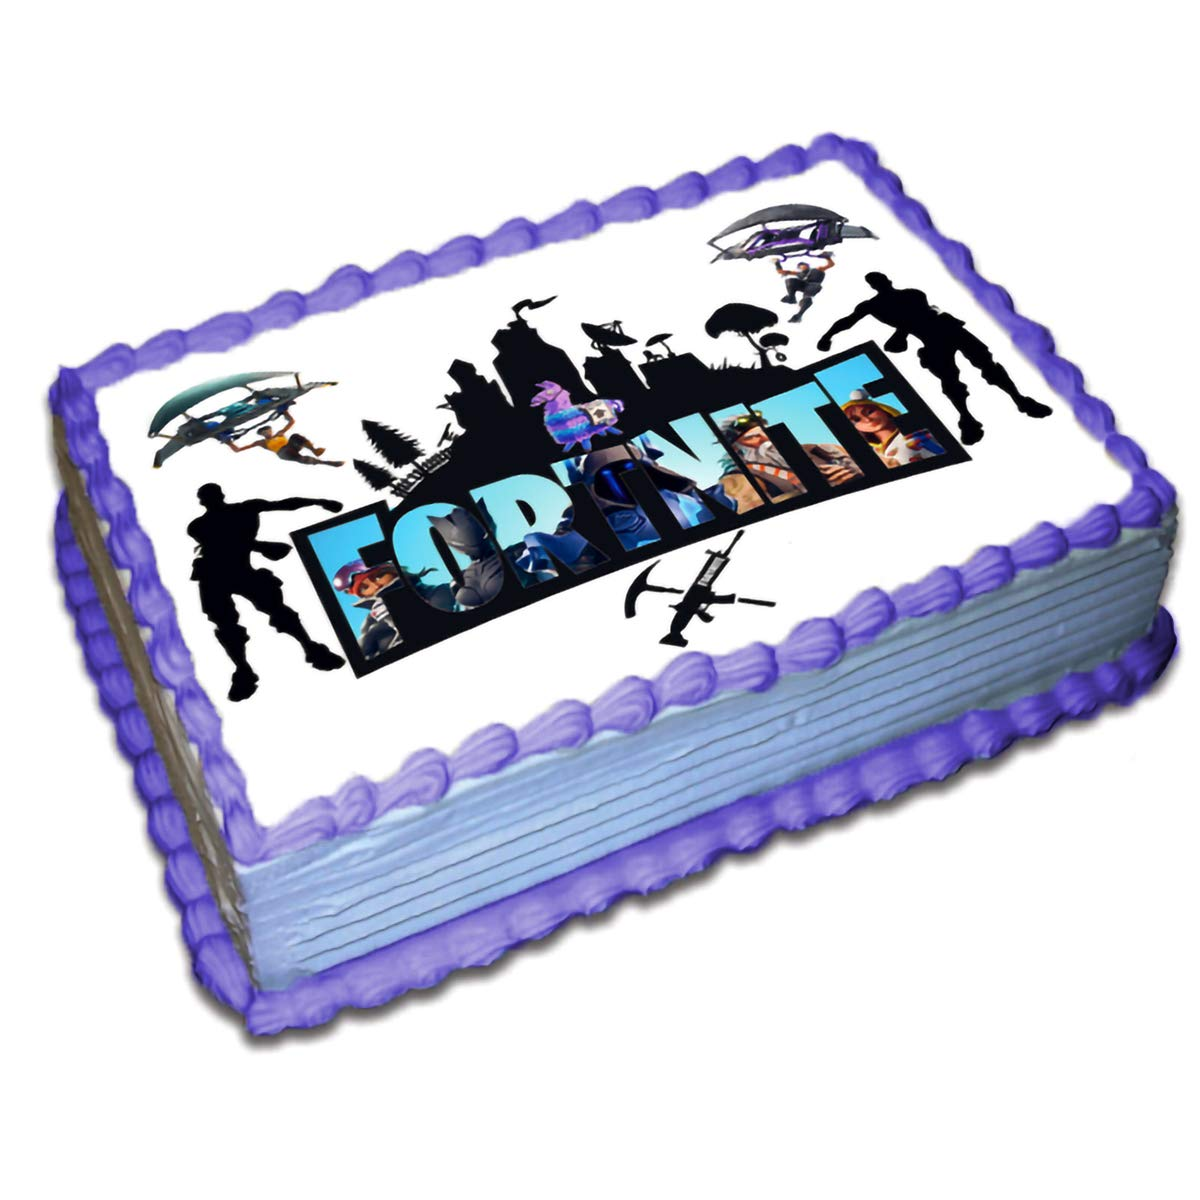 Astonishing Fortnite Cake Toppers Icing Sugar Paper 8 5 X 11 5 Inches Sheet Funny Birthday Cards Online Elaedamsfinfo